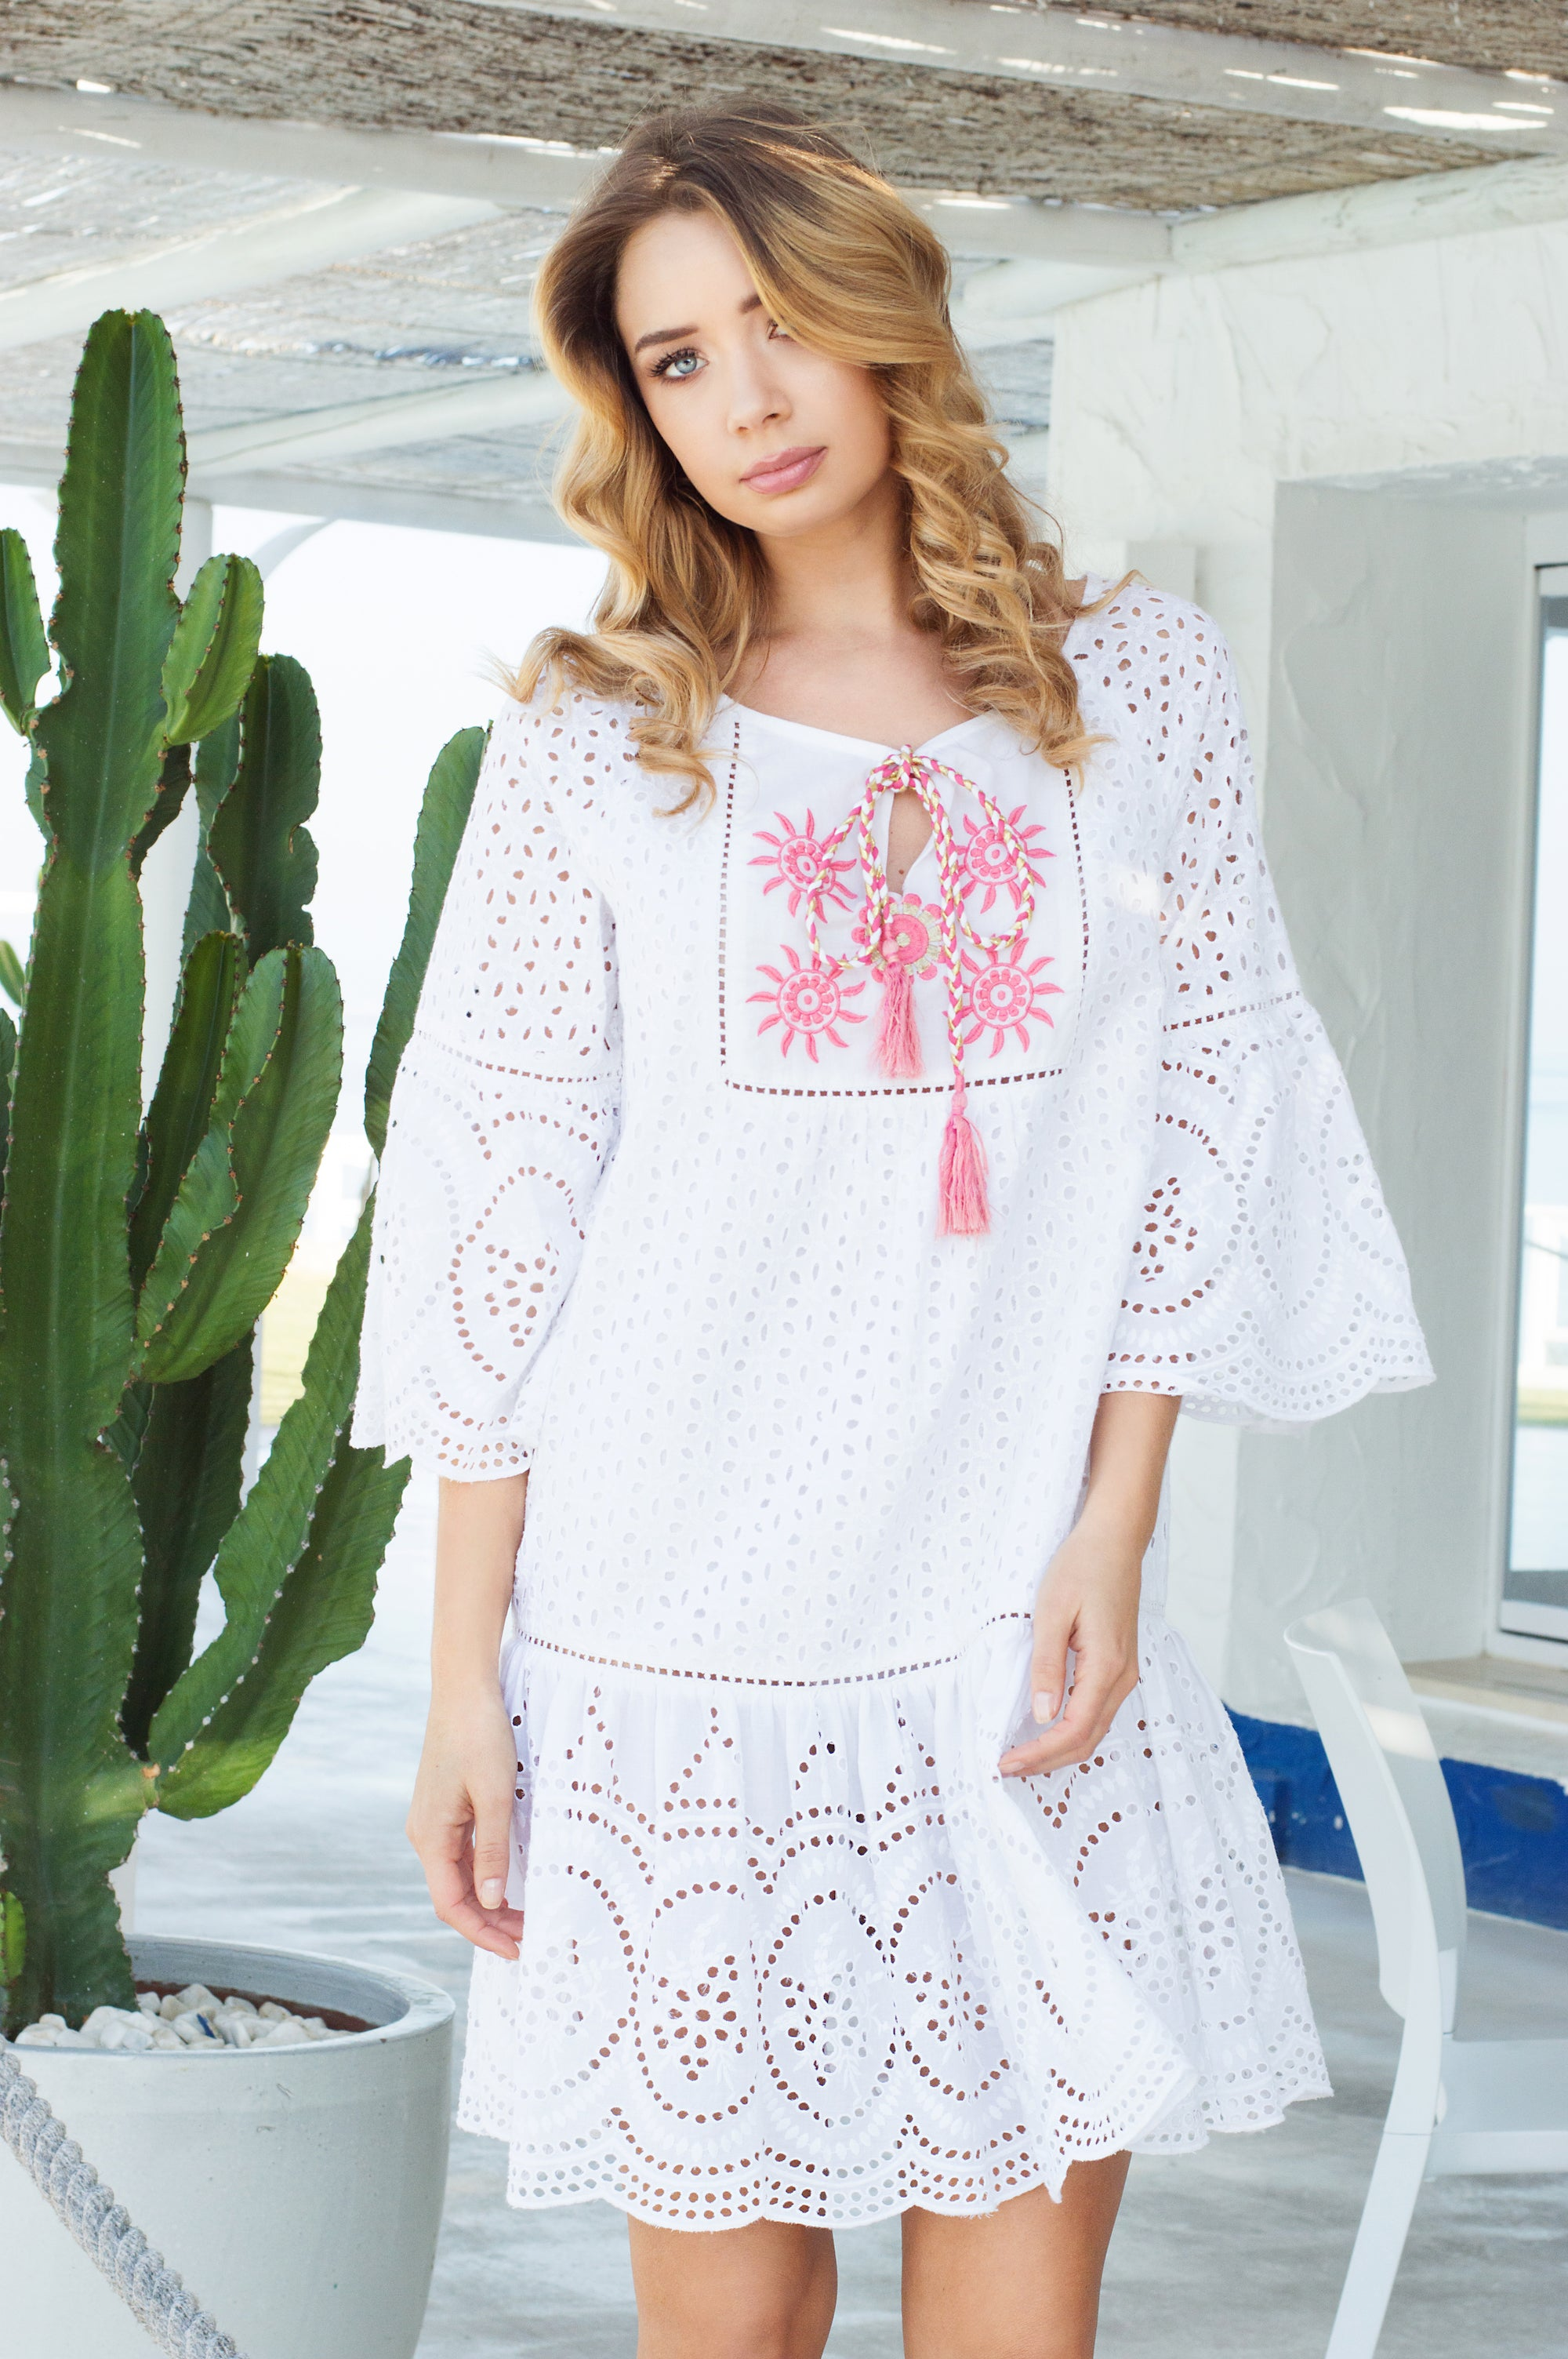 La Campana designer lace cotton dress/ beach cover up - Guilty Beach